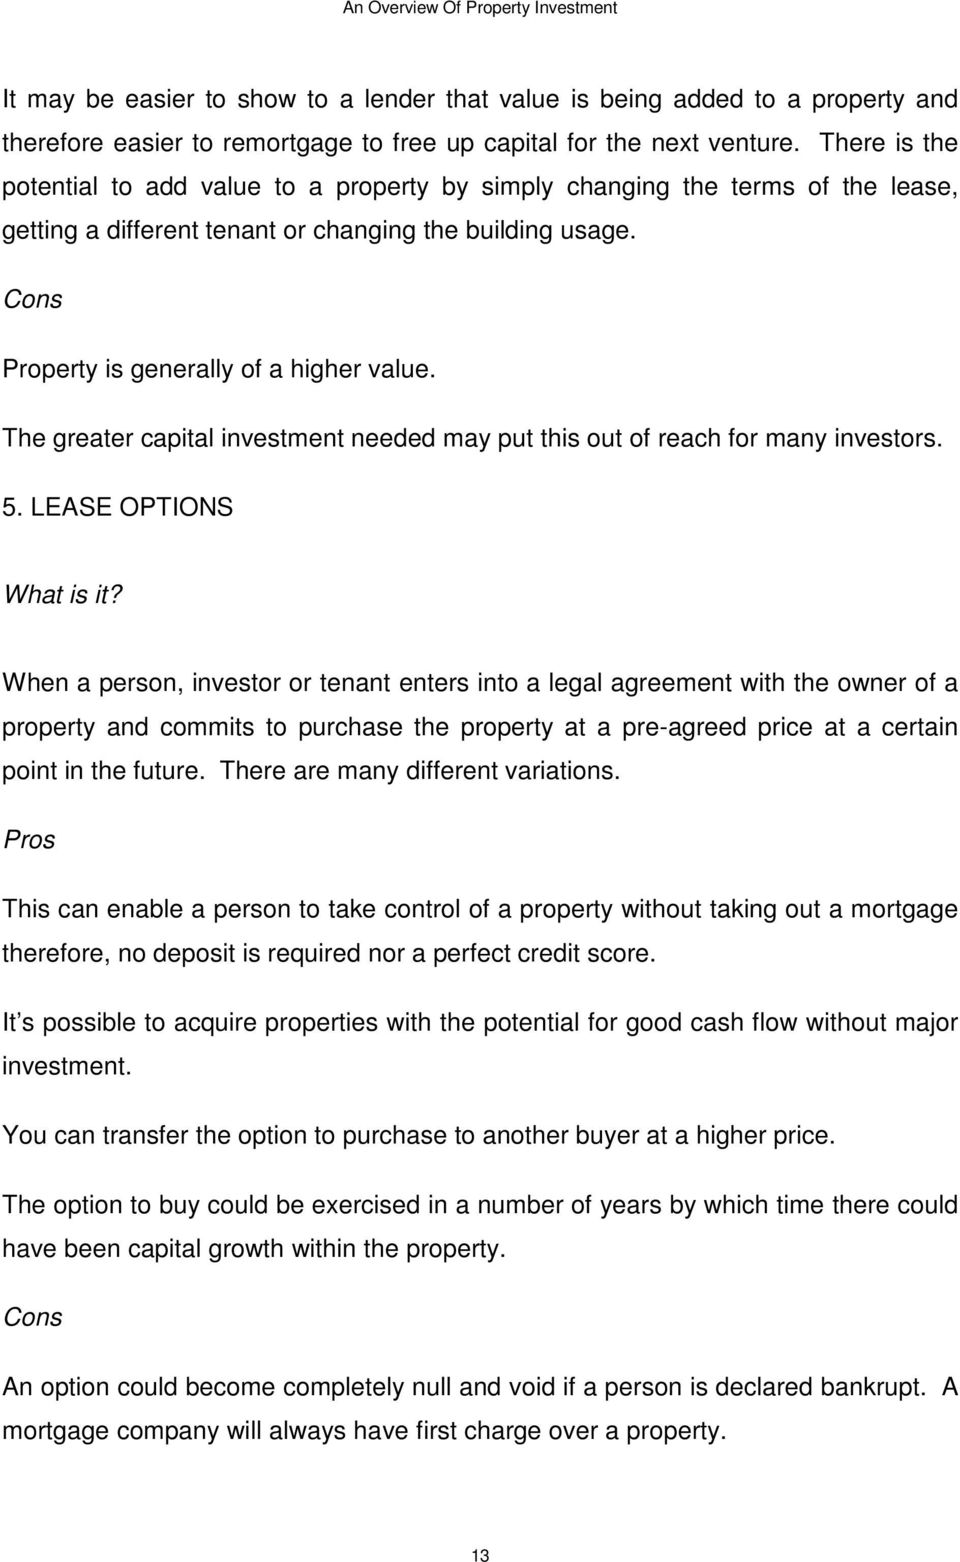 The greater capital investment needed may put this out of reach for many investors. 5. LEASE OPTIONS What is it?